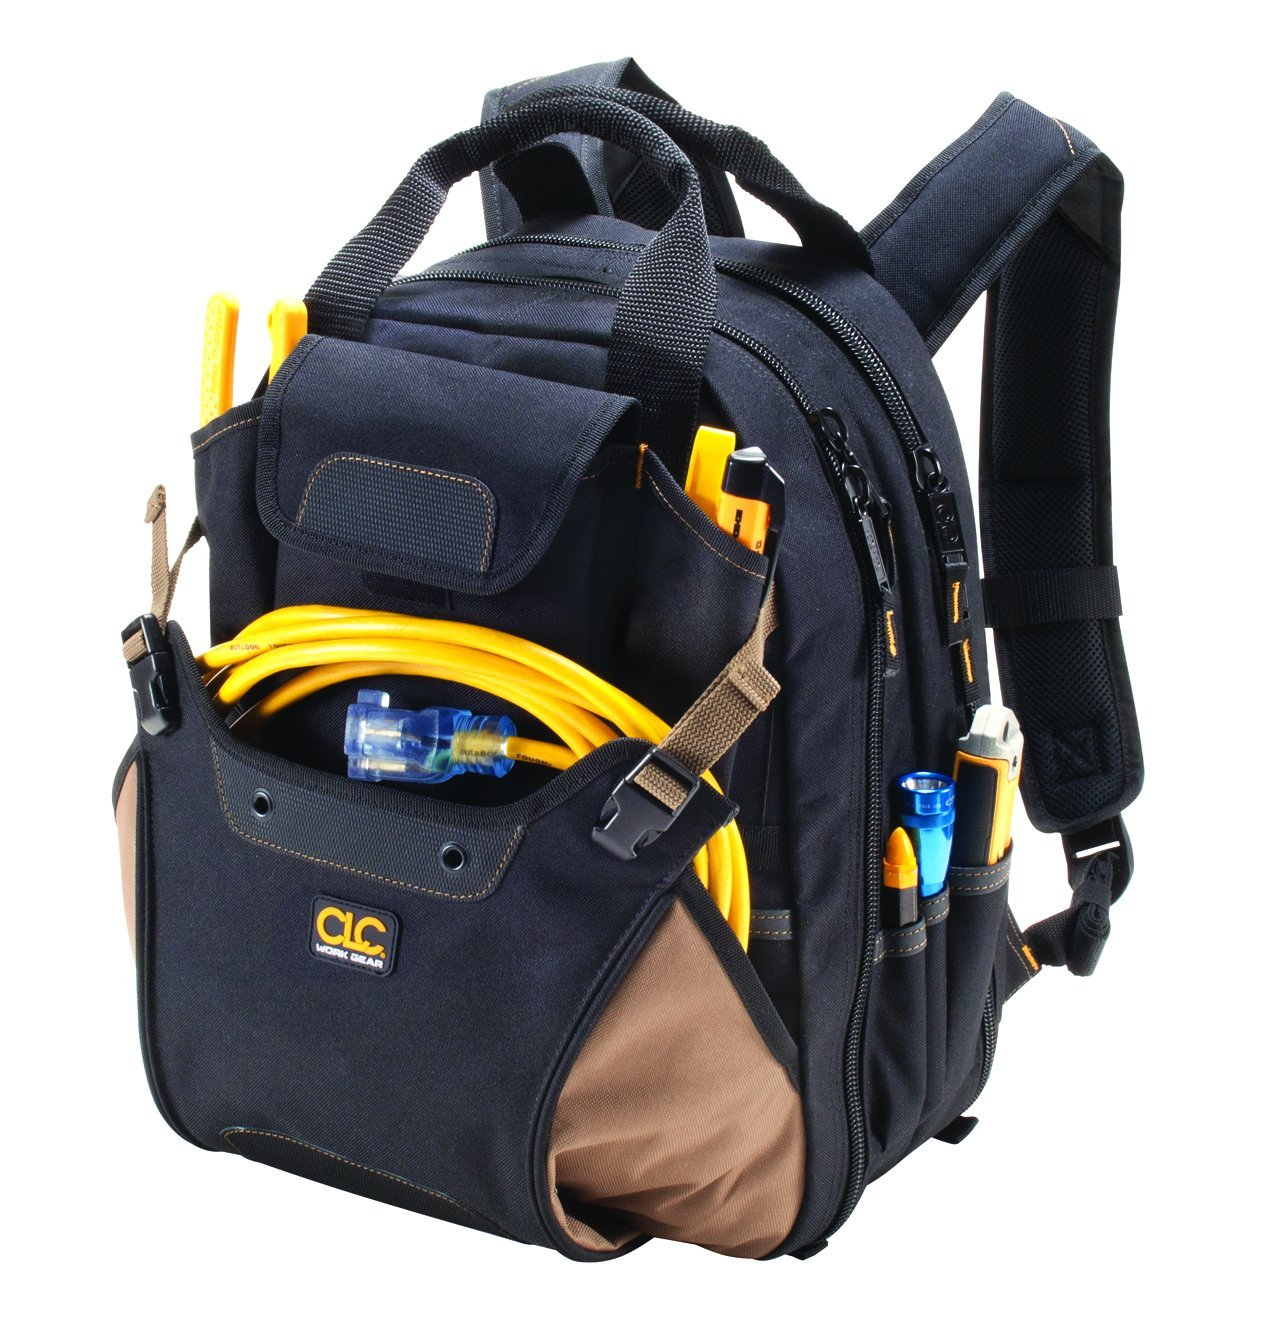 Custom Leathercraft Tool Backpack with 2 Main Zipper Compartments – Available in 2 Styles